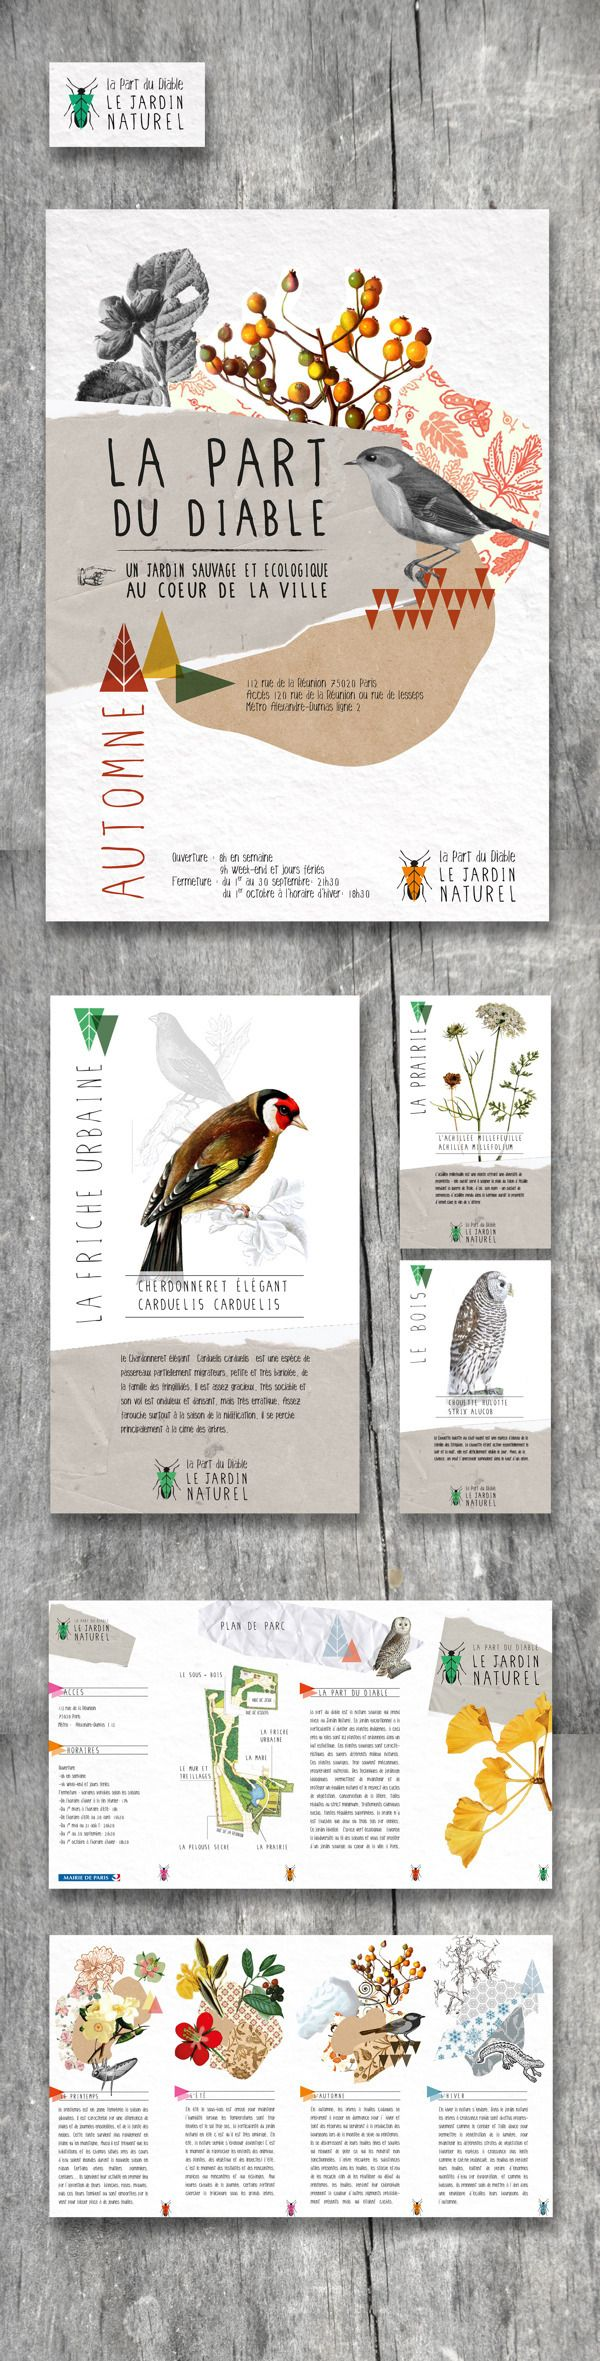 Bird guide BROCHURE Natural Garden, Paris by Marion Dufour editorial design with